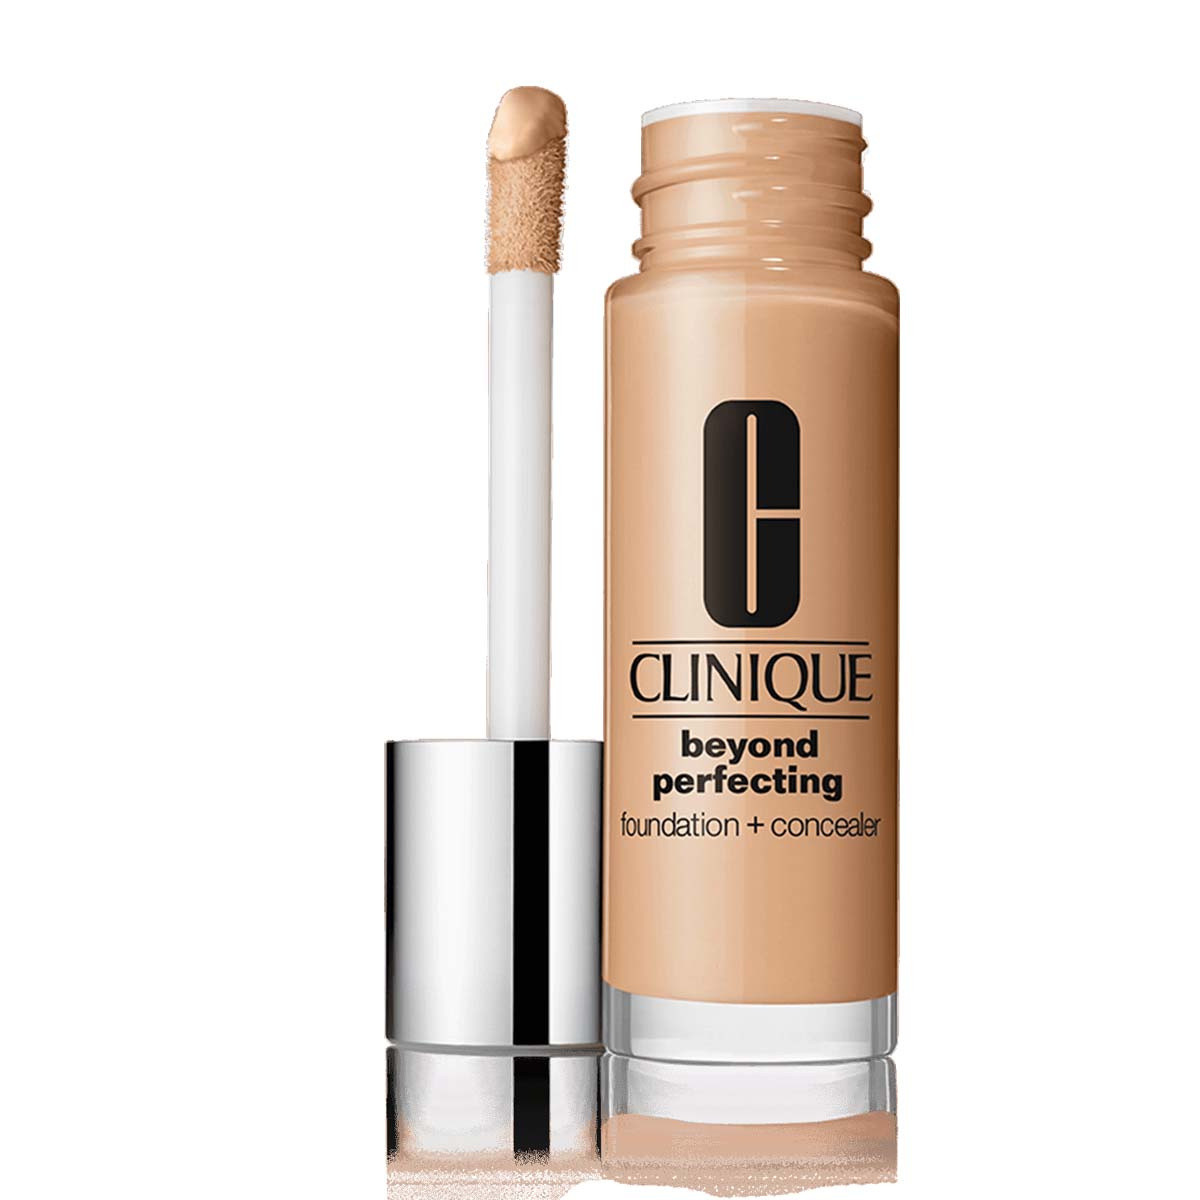 Clinique beyond perfecting foundation, CN 40 CREAM CHAMOIS, large image number 0